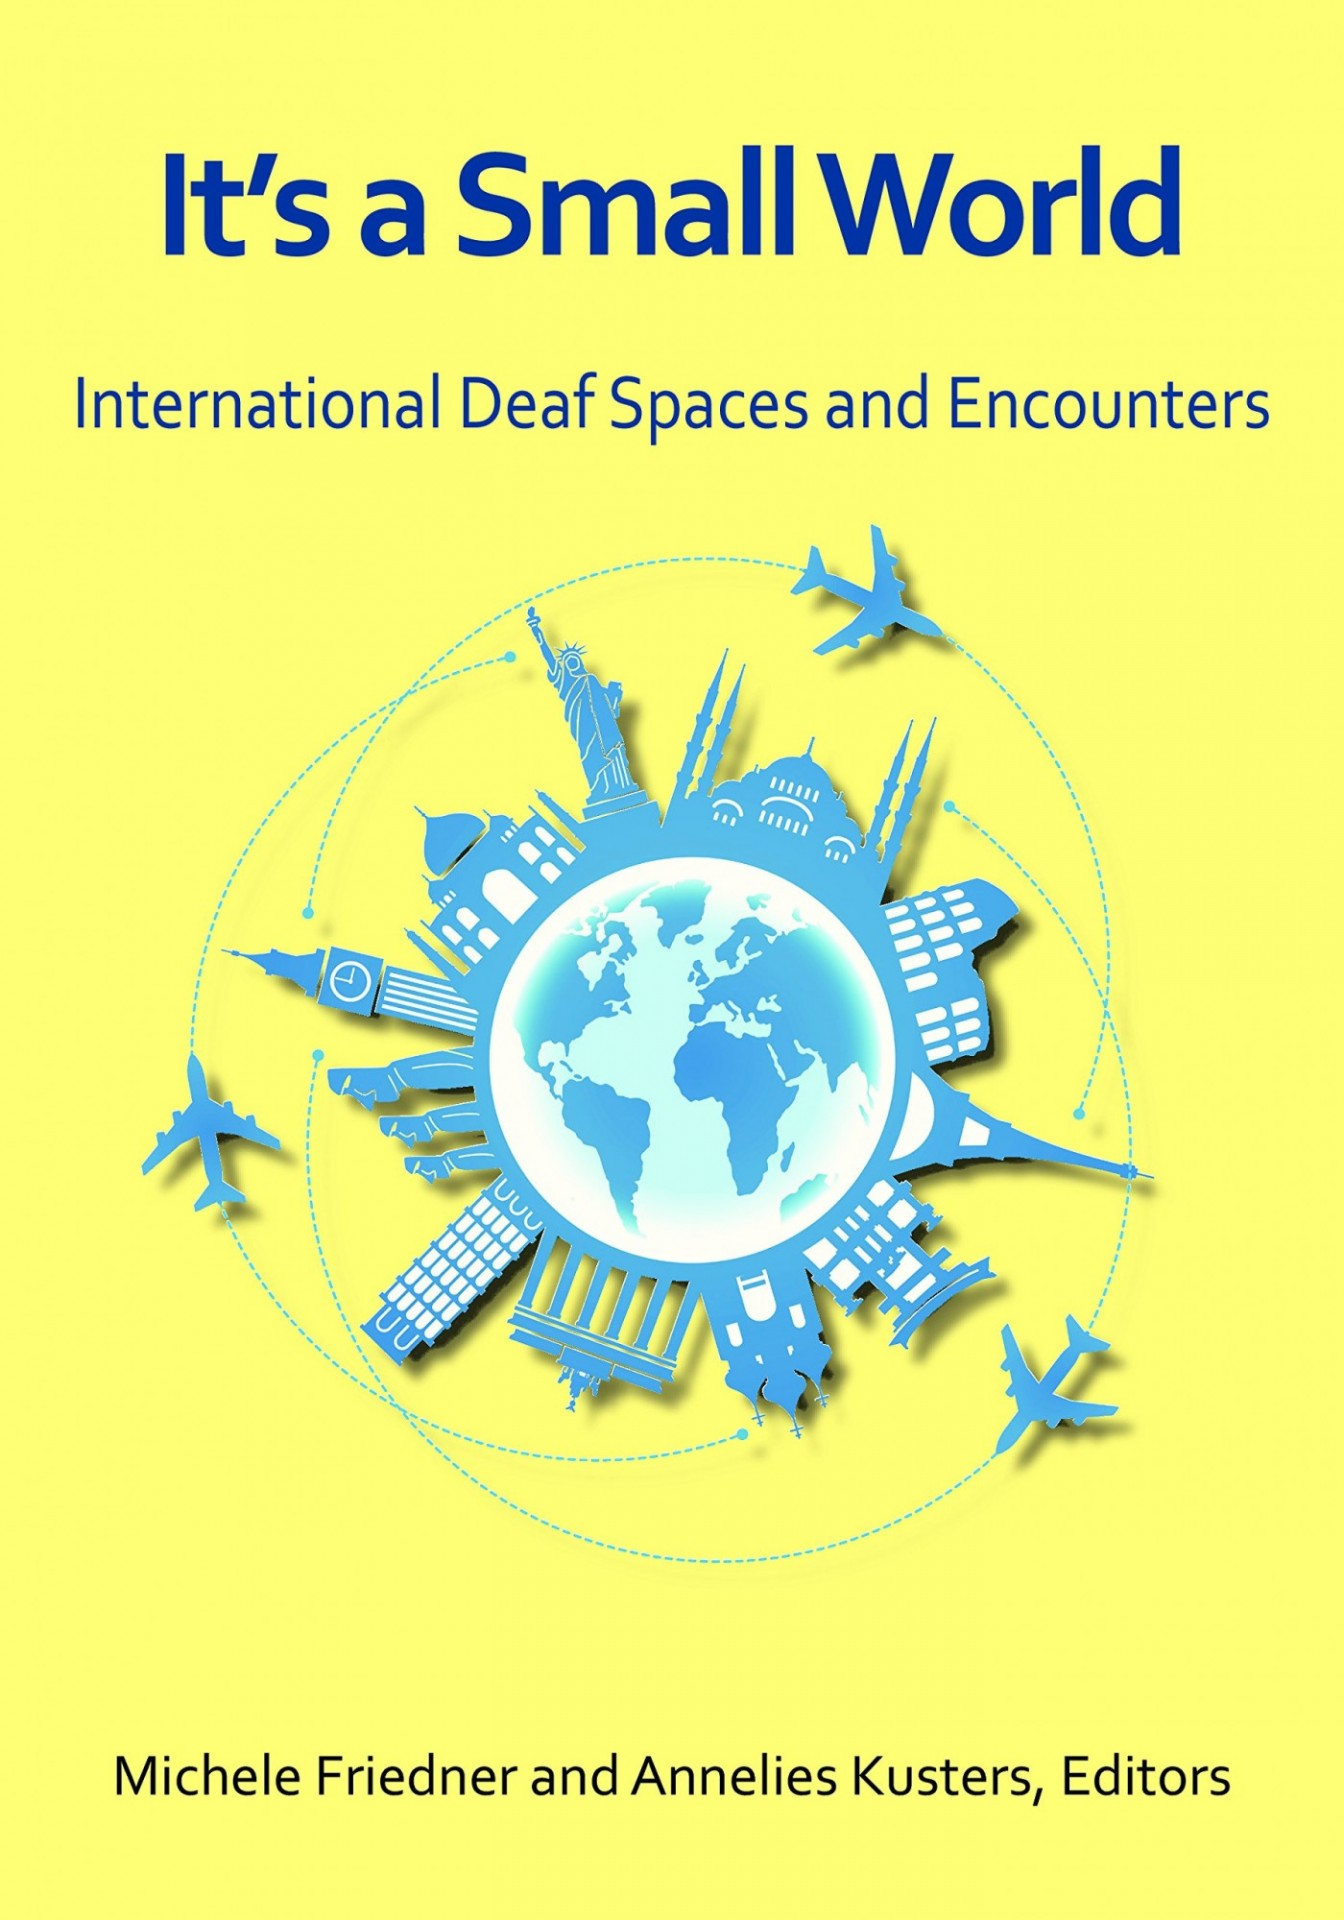 Book cover featuring an artistic rendition of a globe on a yellow background.